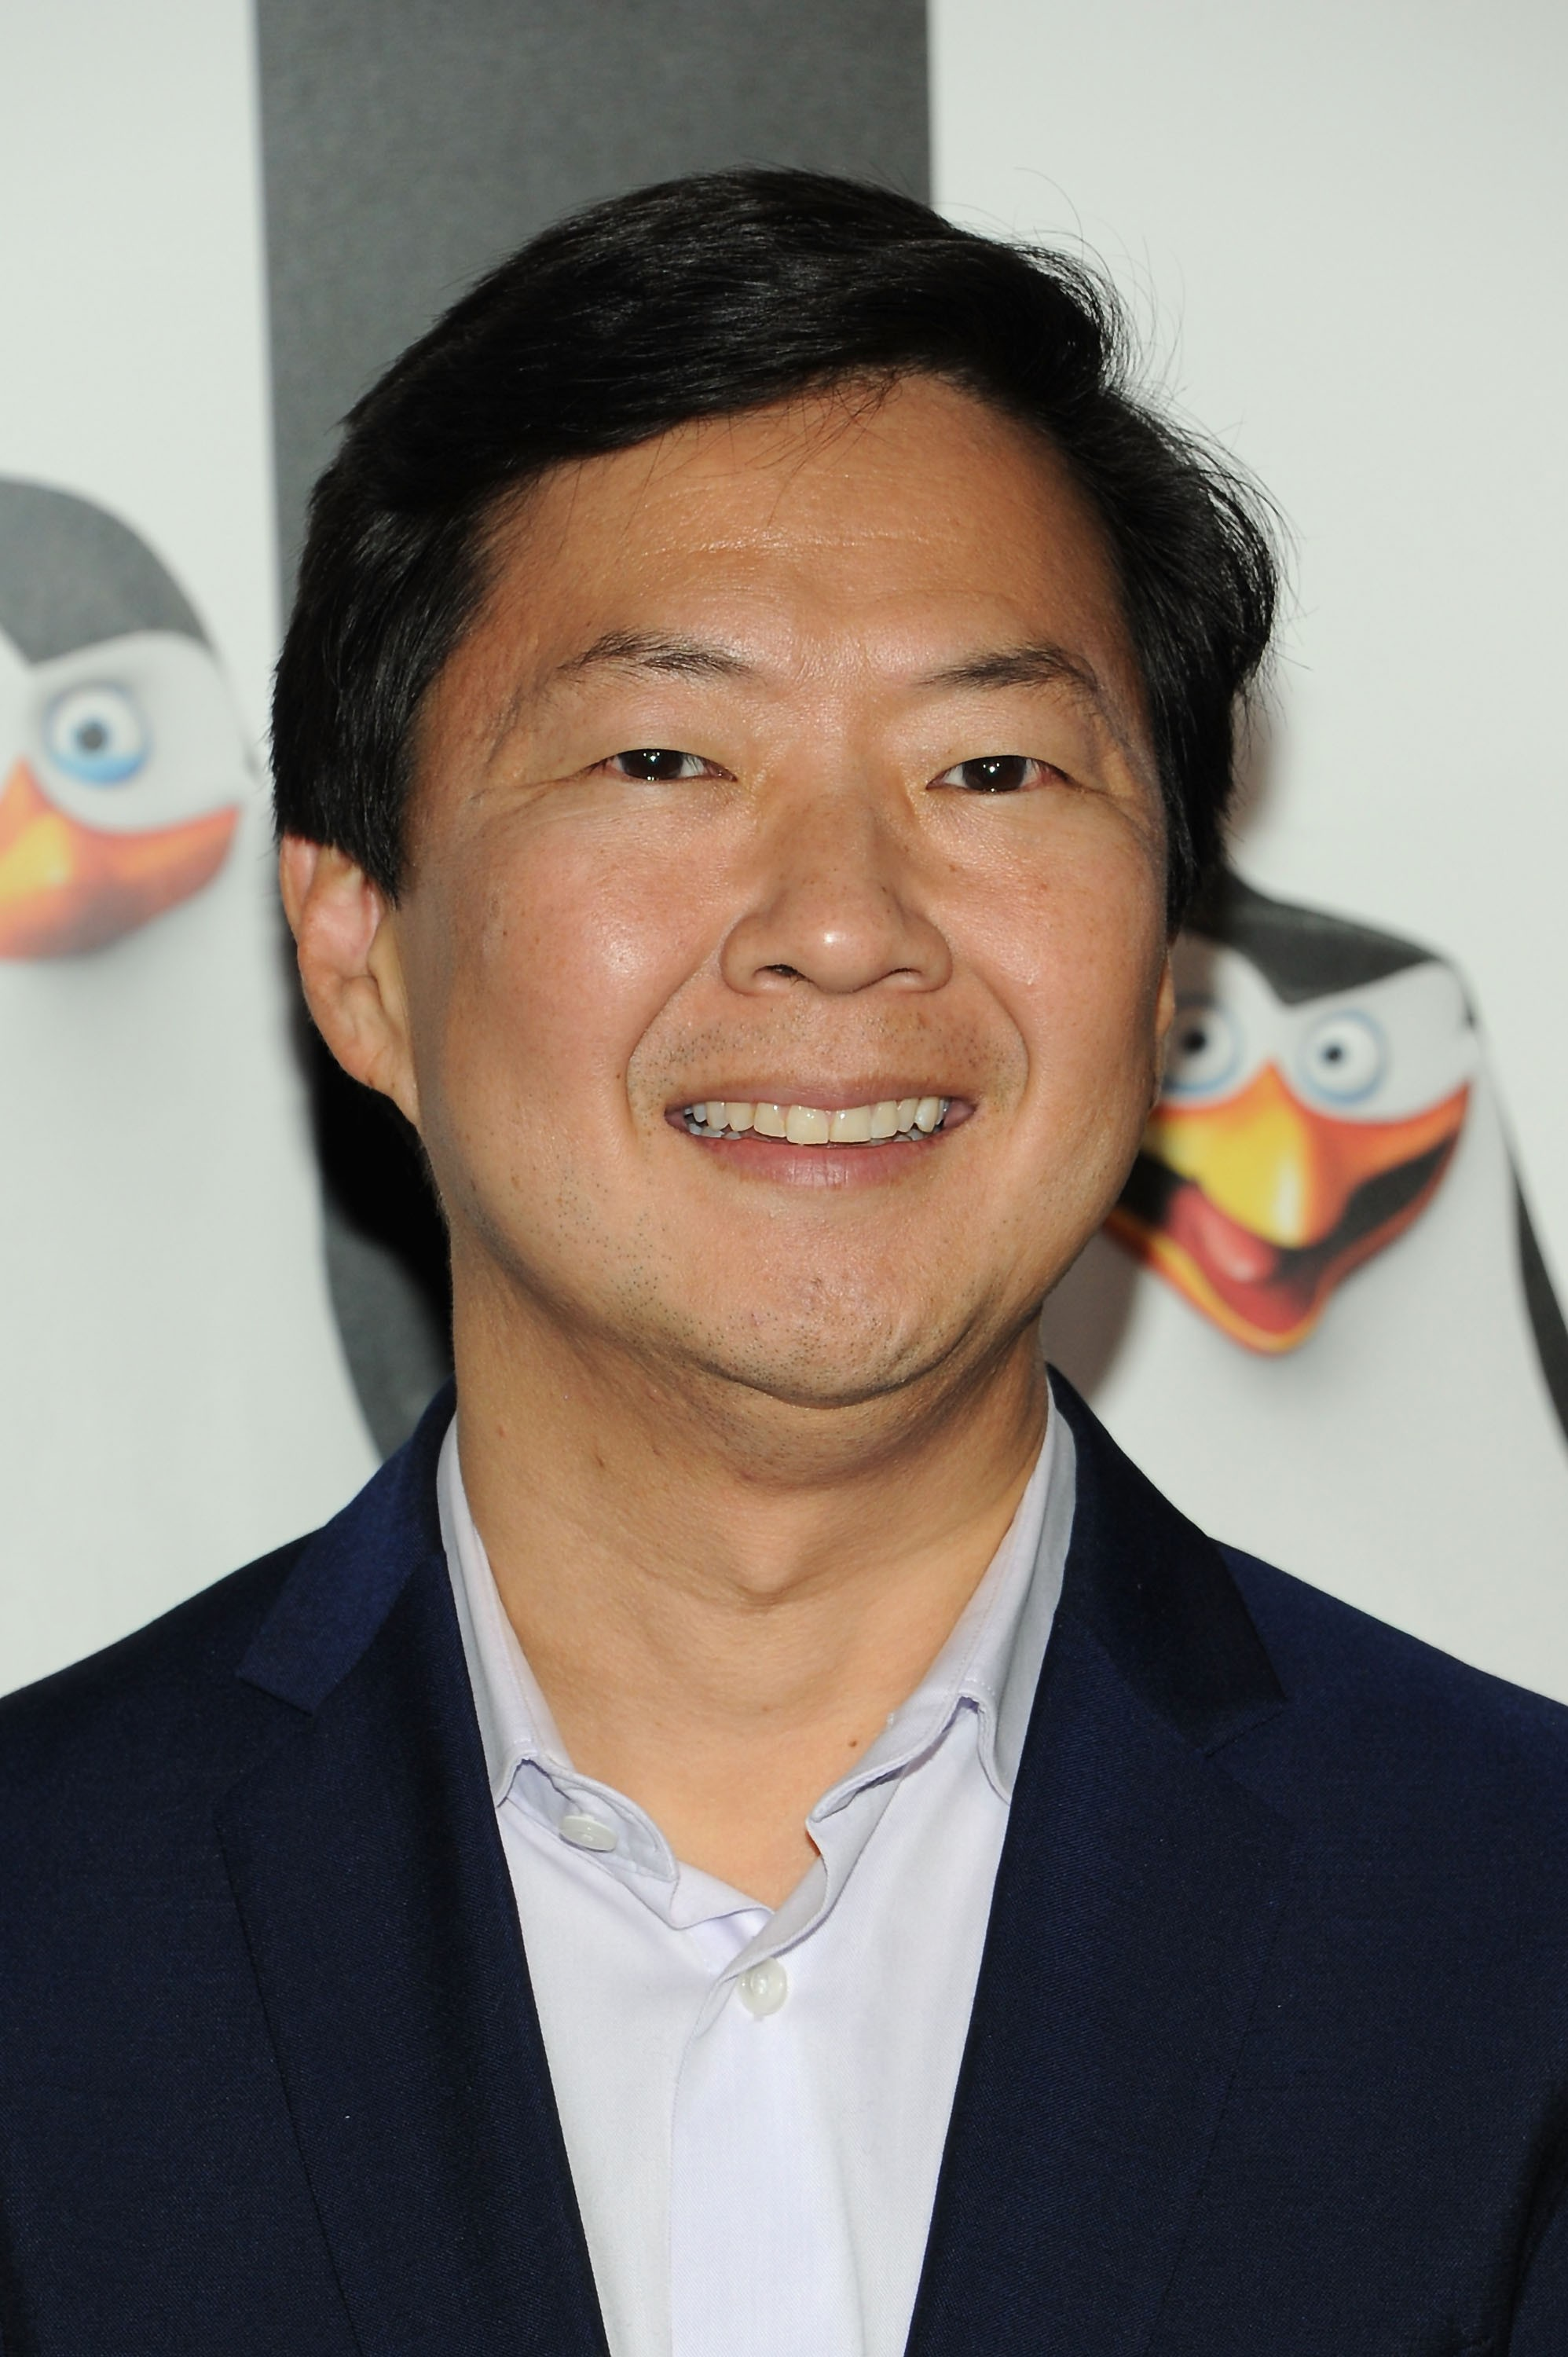 Ken Jeong é médico, formado pelas universidades de Duke e North Carolina (Foto: Getty Images)